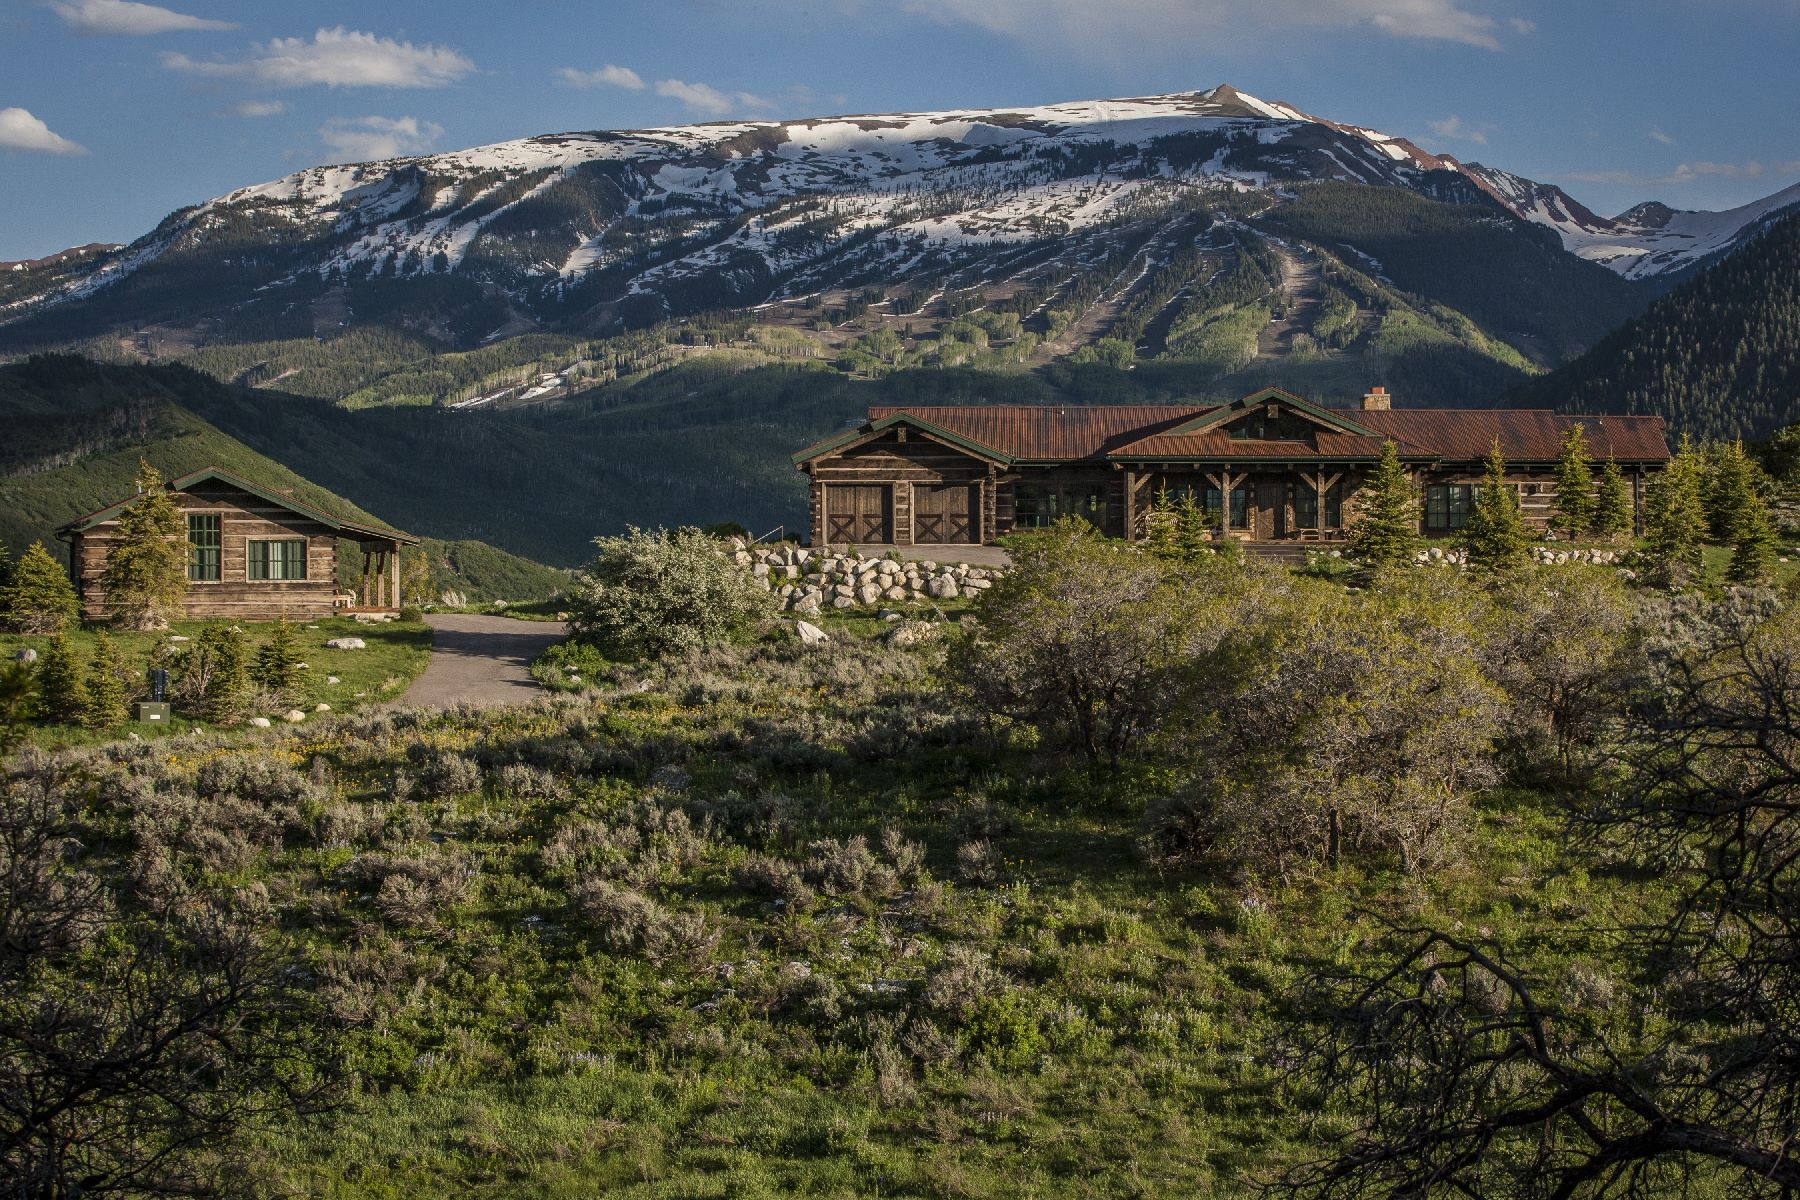 Single Family Home for Sale at Star Ranch 1120 Shield O Road, Snowmass, Colorado, 81654 United States